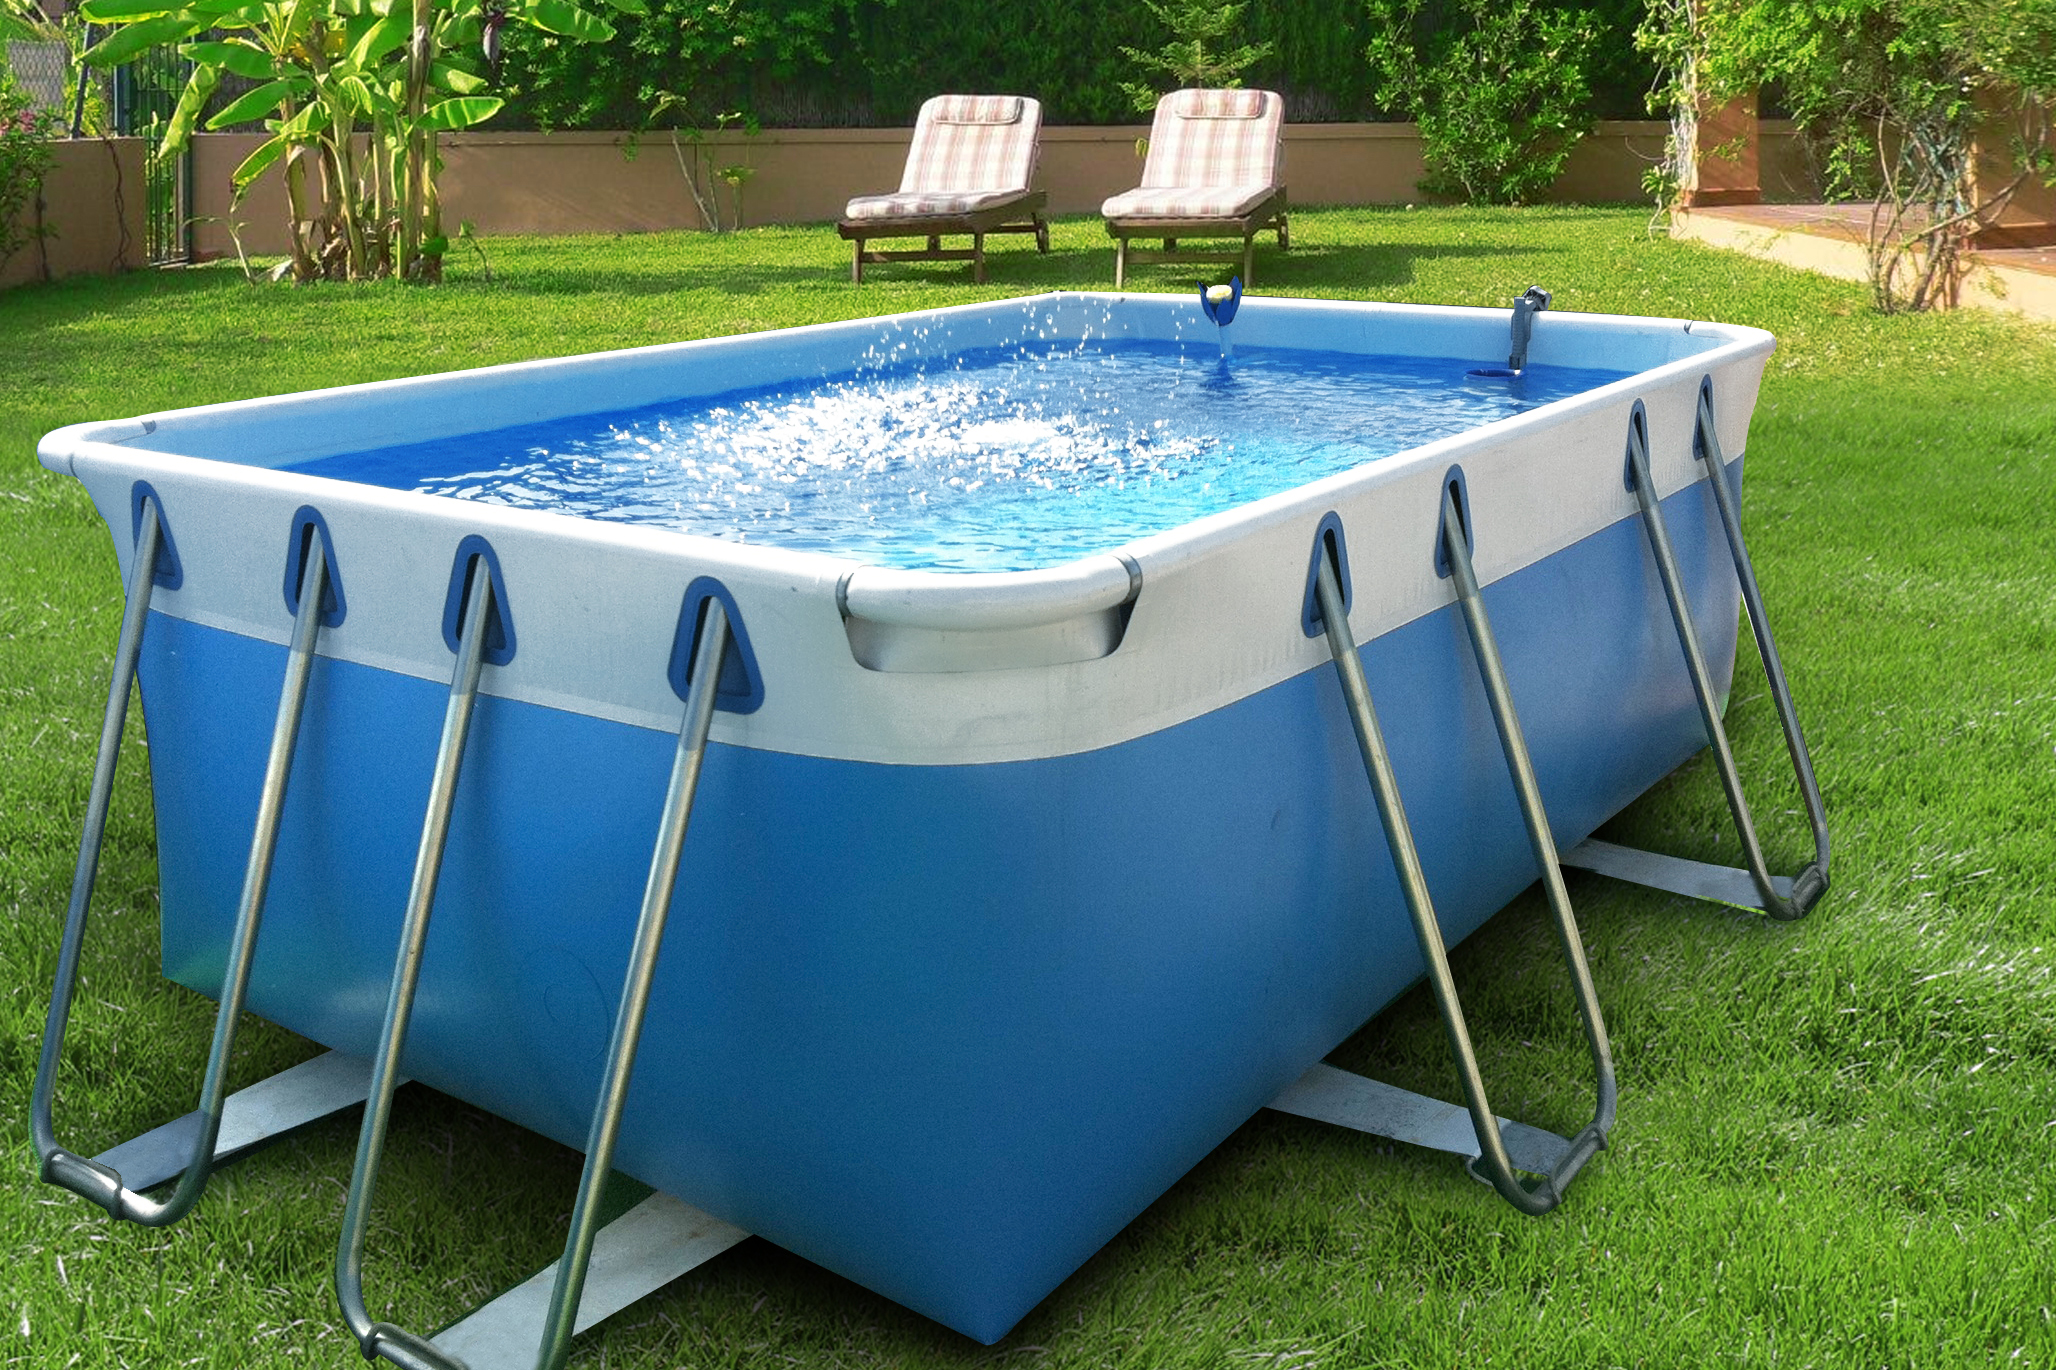 Piscine fuori terra intex agribrianza for Accessori per piscine fuori terra